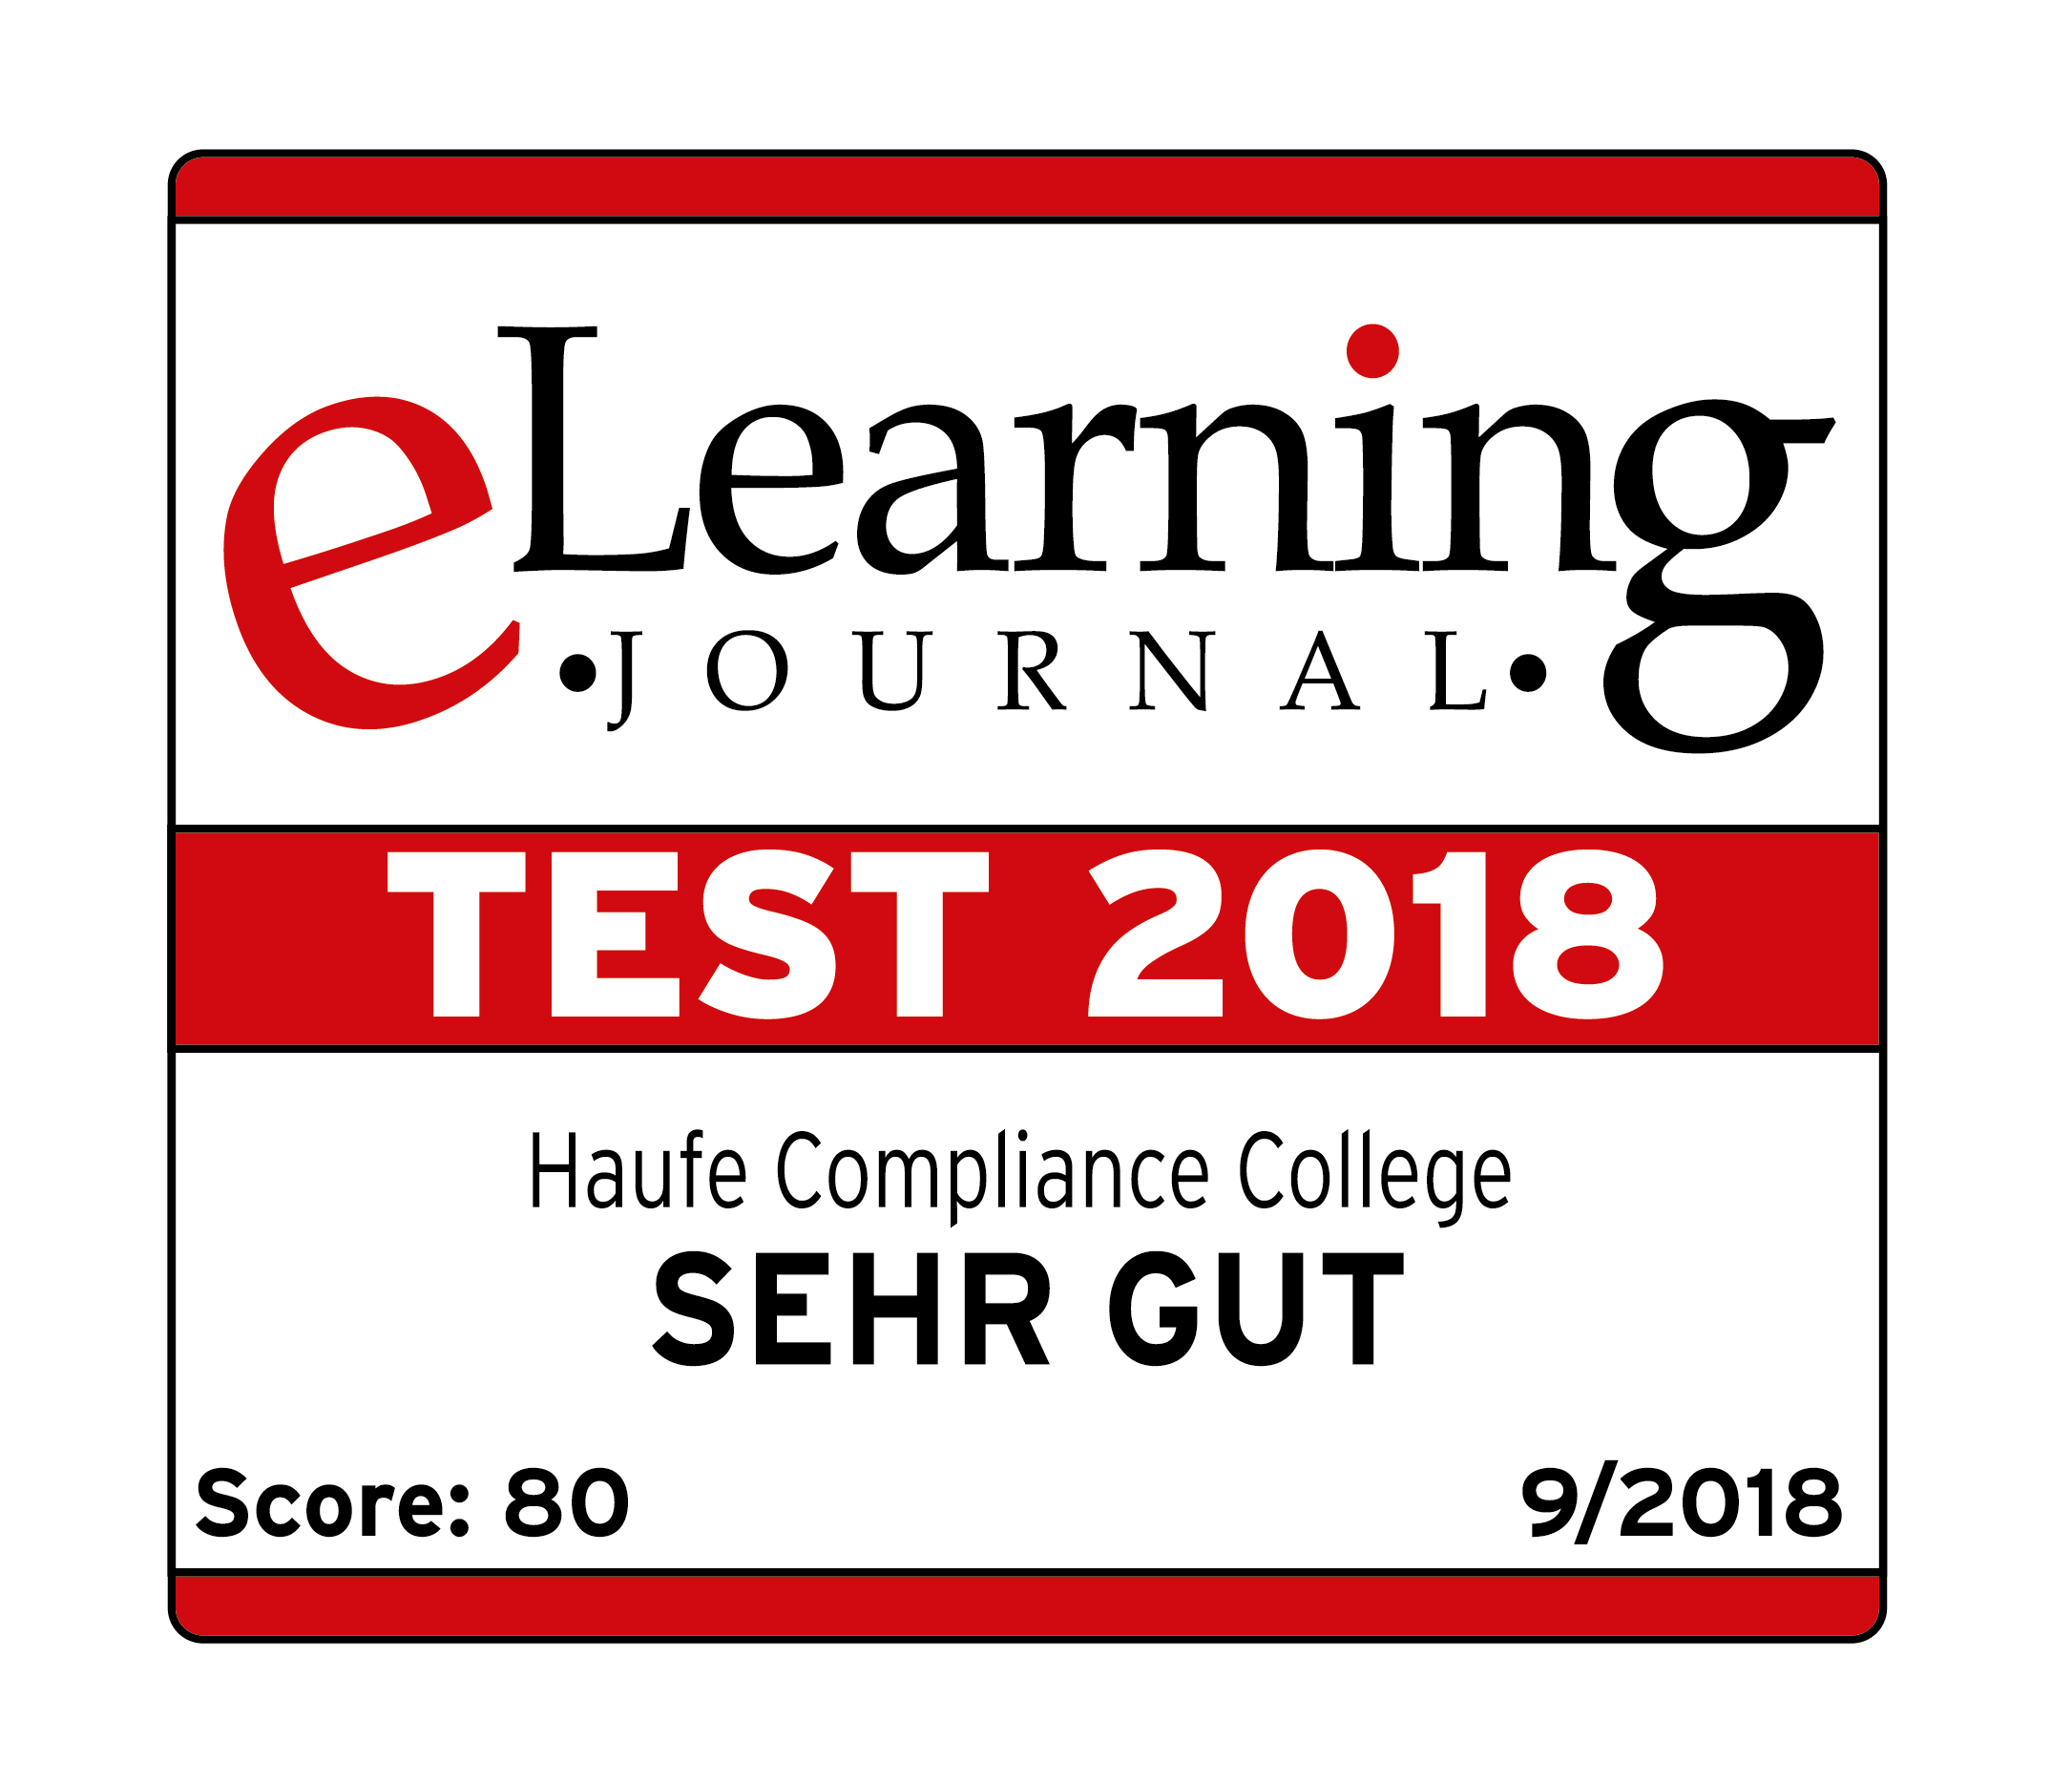 elearning journal test 2018 haufe compliance college note sehr gut